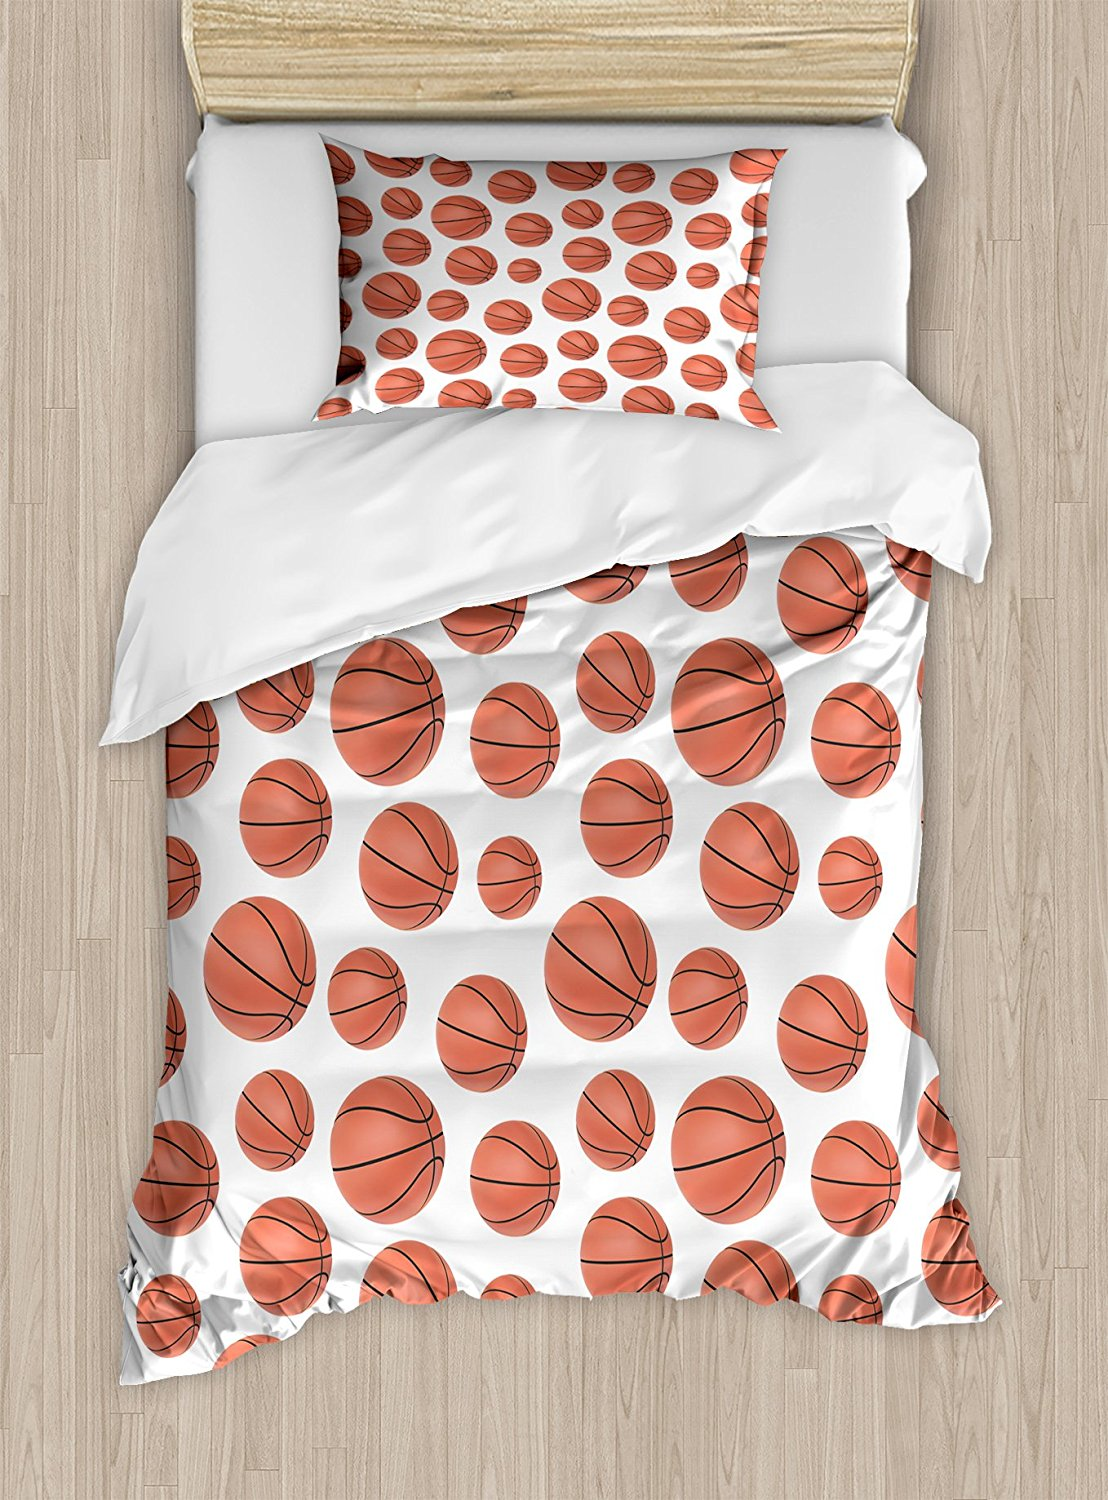 Basketball Duvet Cover Set Realistic Style Pattern On White Clical Sports Themed 4 Piece Bedding In Sets From Home Garden